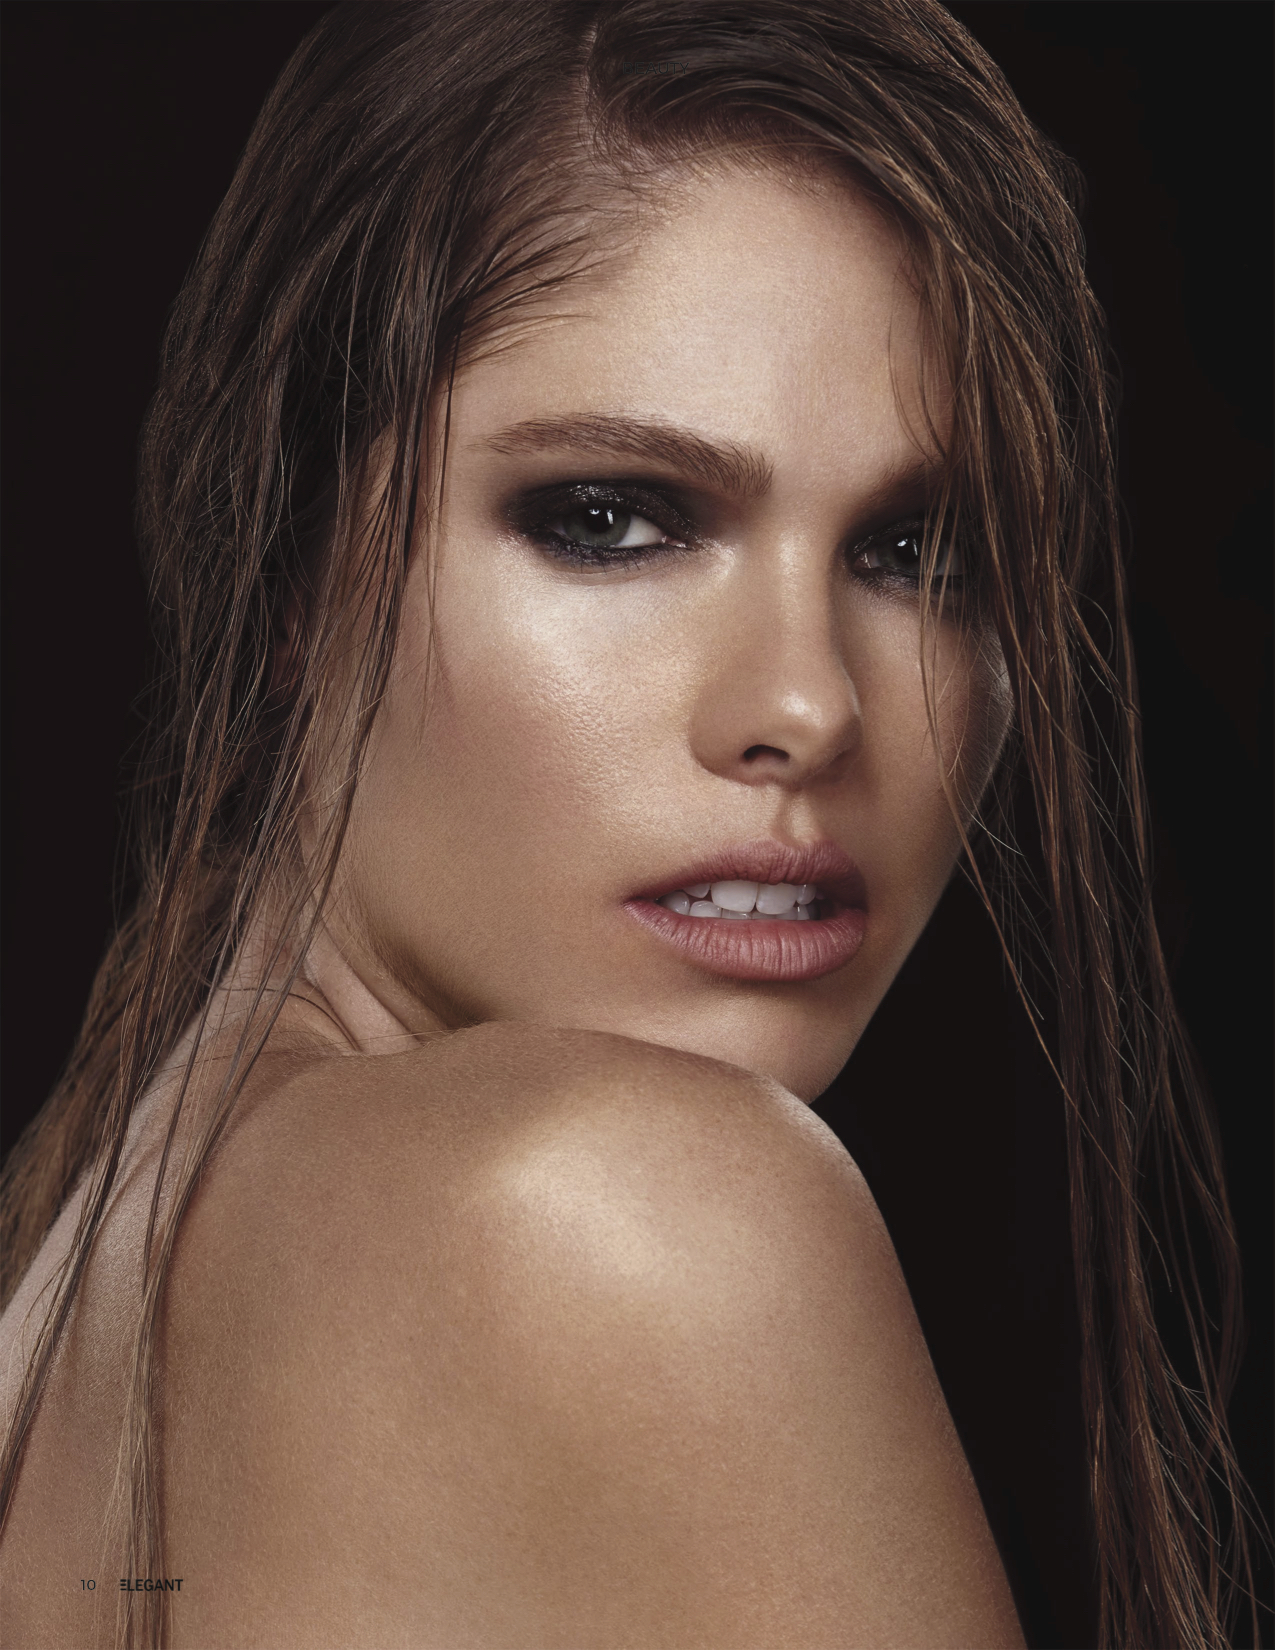 Published beauty editorial makeup